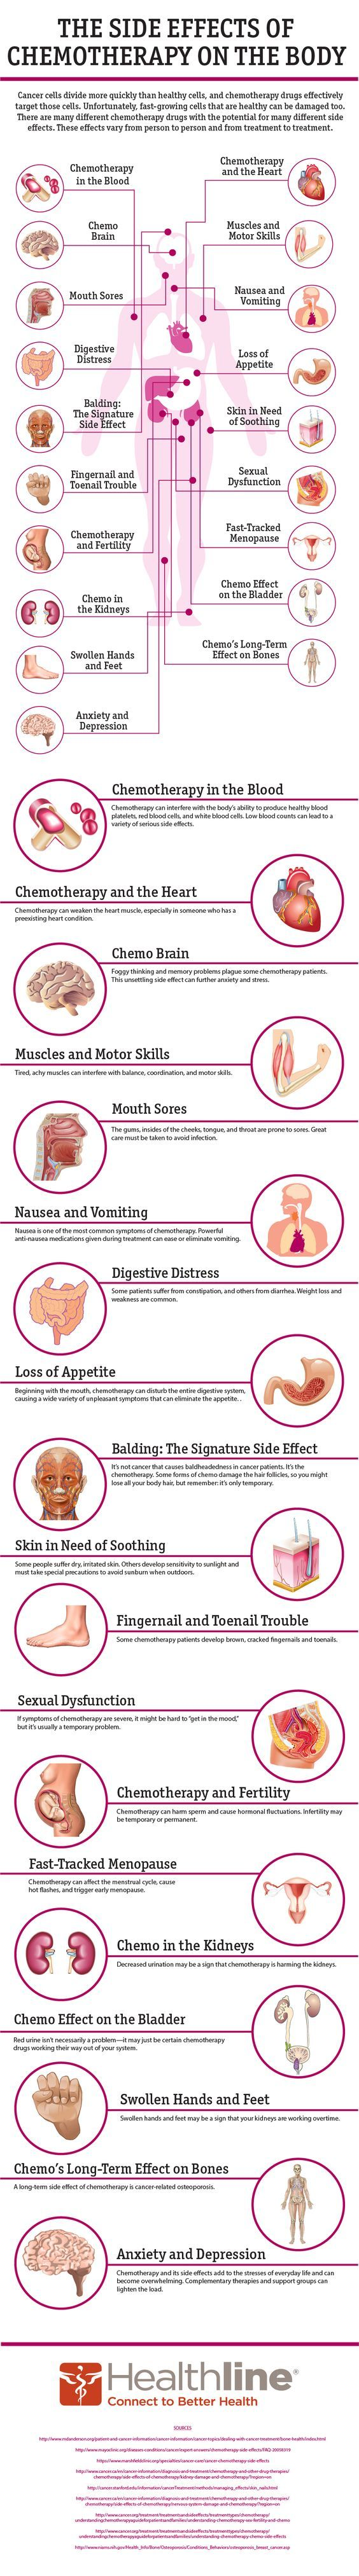 The Side Effects of Chemotherapy on the Body